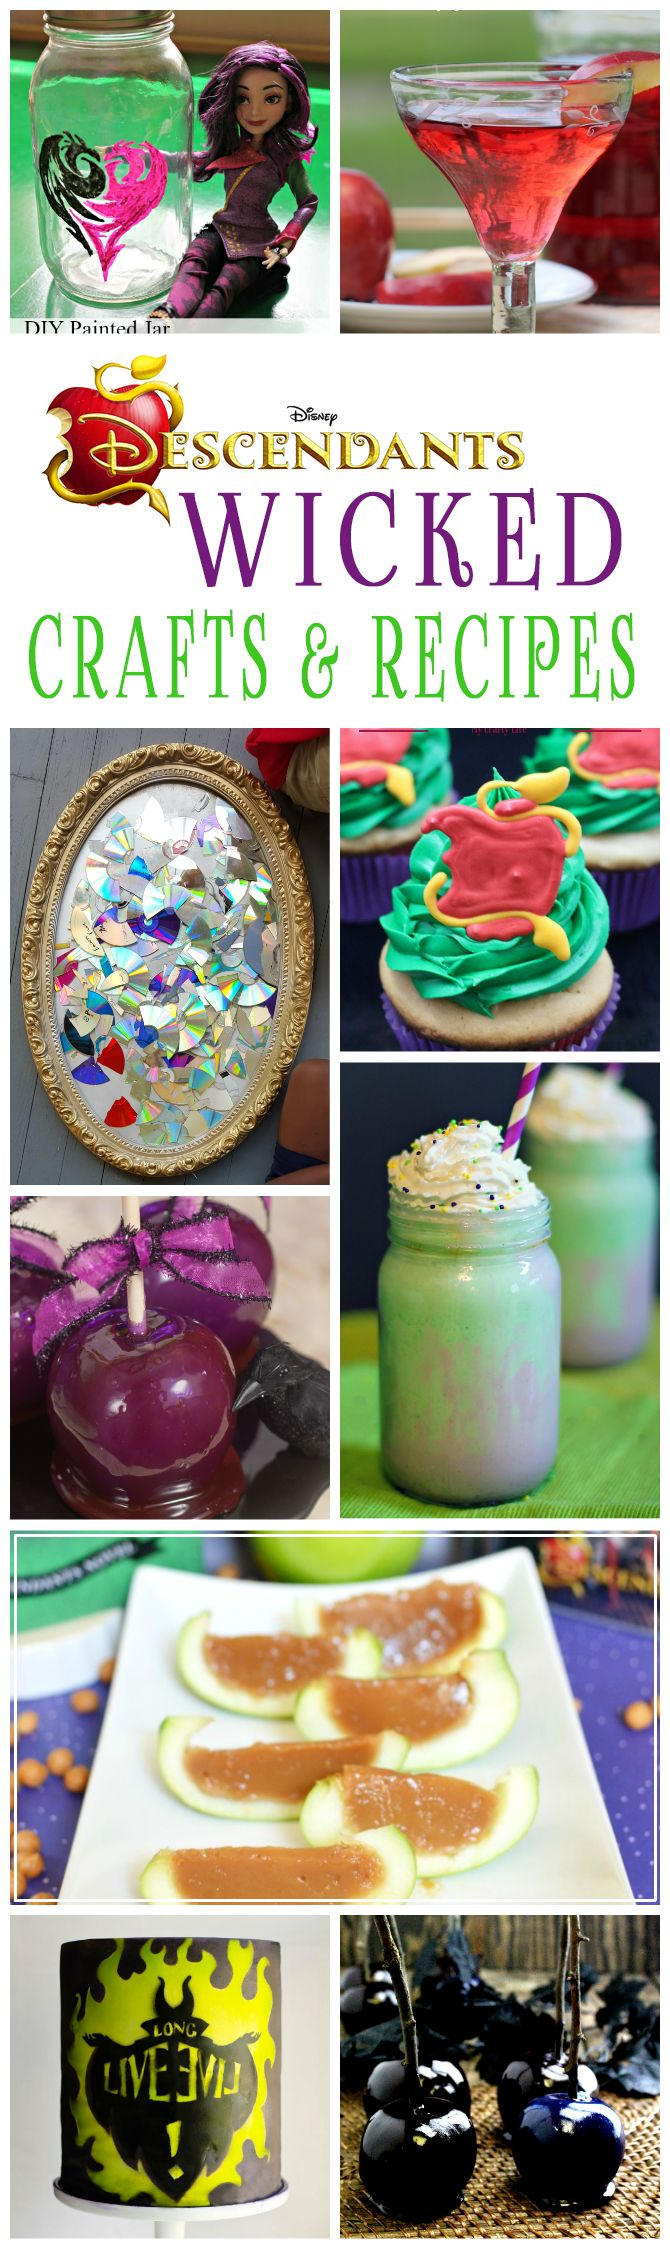 Disney Descendants crafts and recipes that are perfect for a movie watching or birthday party. Lots of wicked fun to be had!